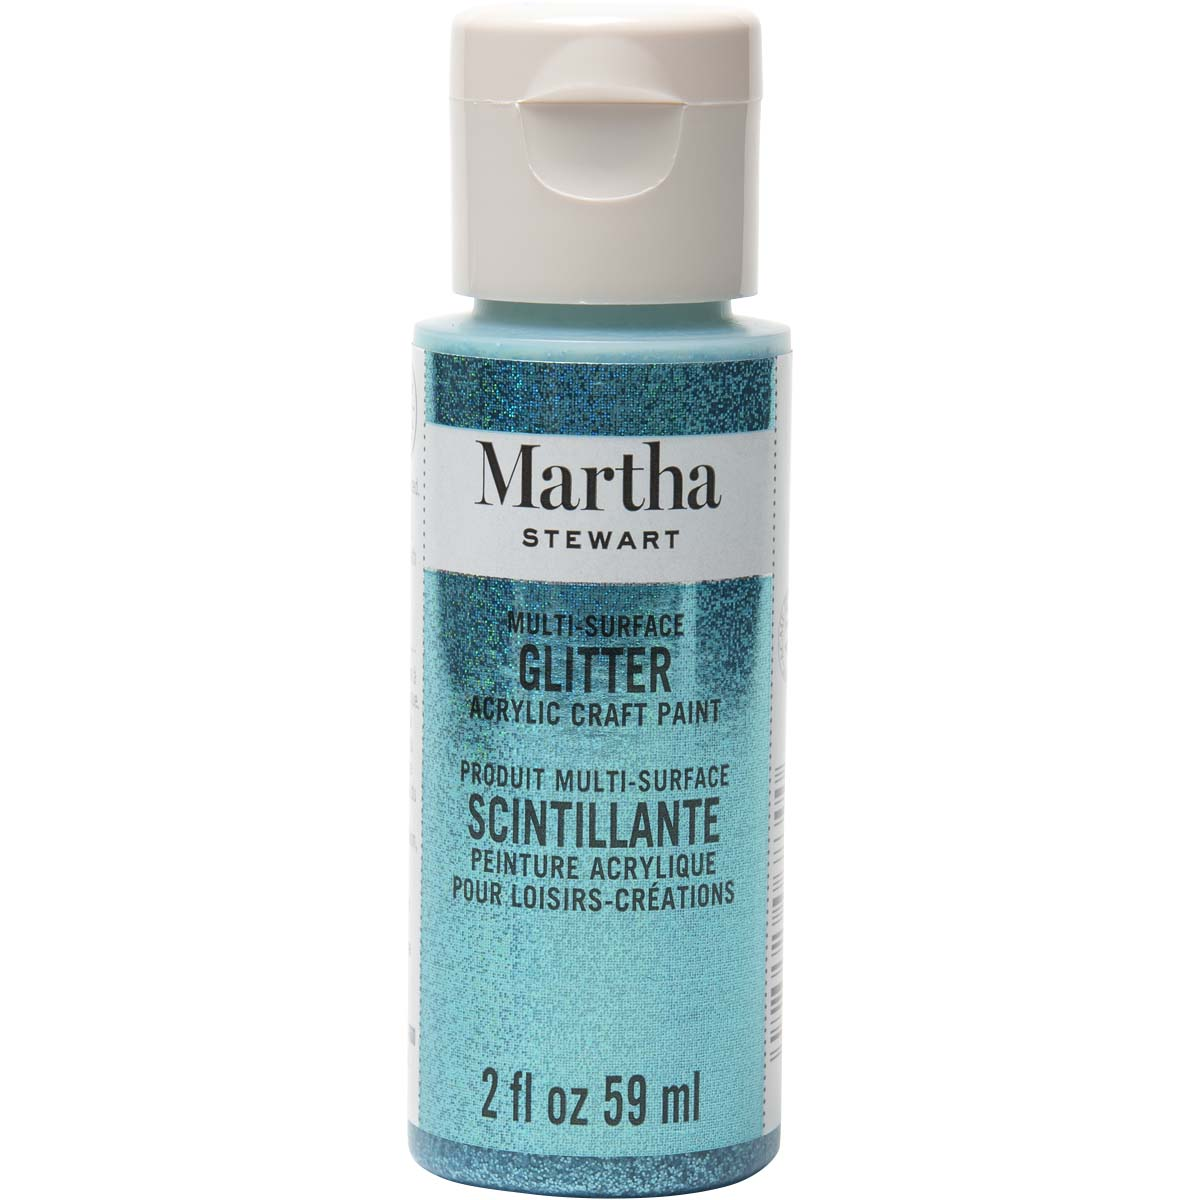 Martha Stewart ® Multi-Surface Glitter Acrylic Craft Paint - Turquoise, 2 oz. - 32157CA